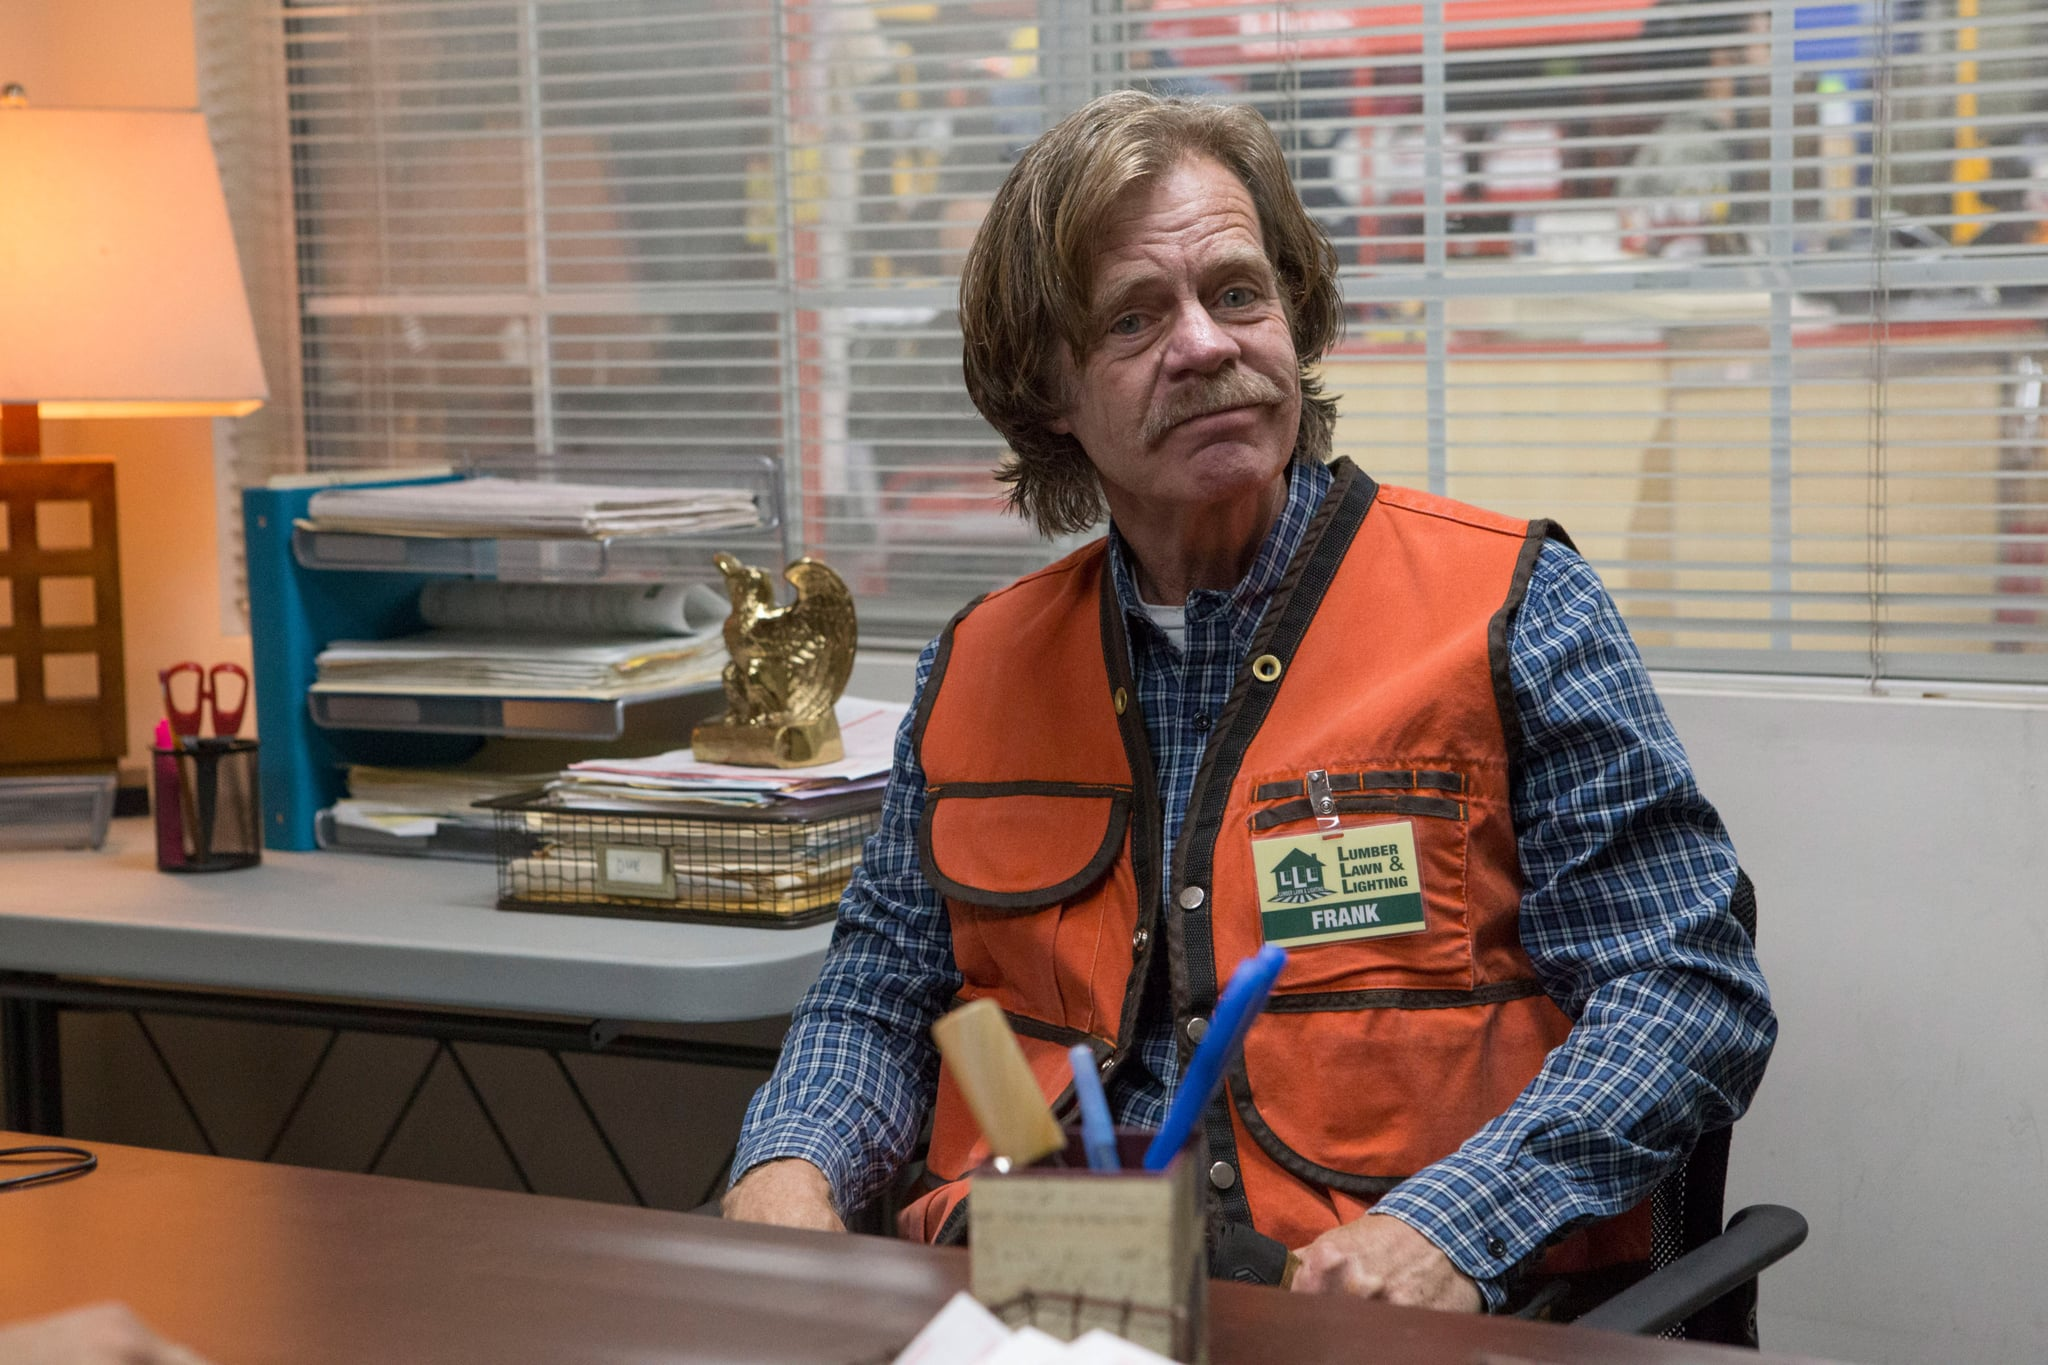 SHAMELESS, William H. Macy in 'Where's My Meth?' (Season 8, Episode 2, aired November 12, 2017). ph: Paul Sarkis/ Showtime/courtesy Everett Collection